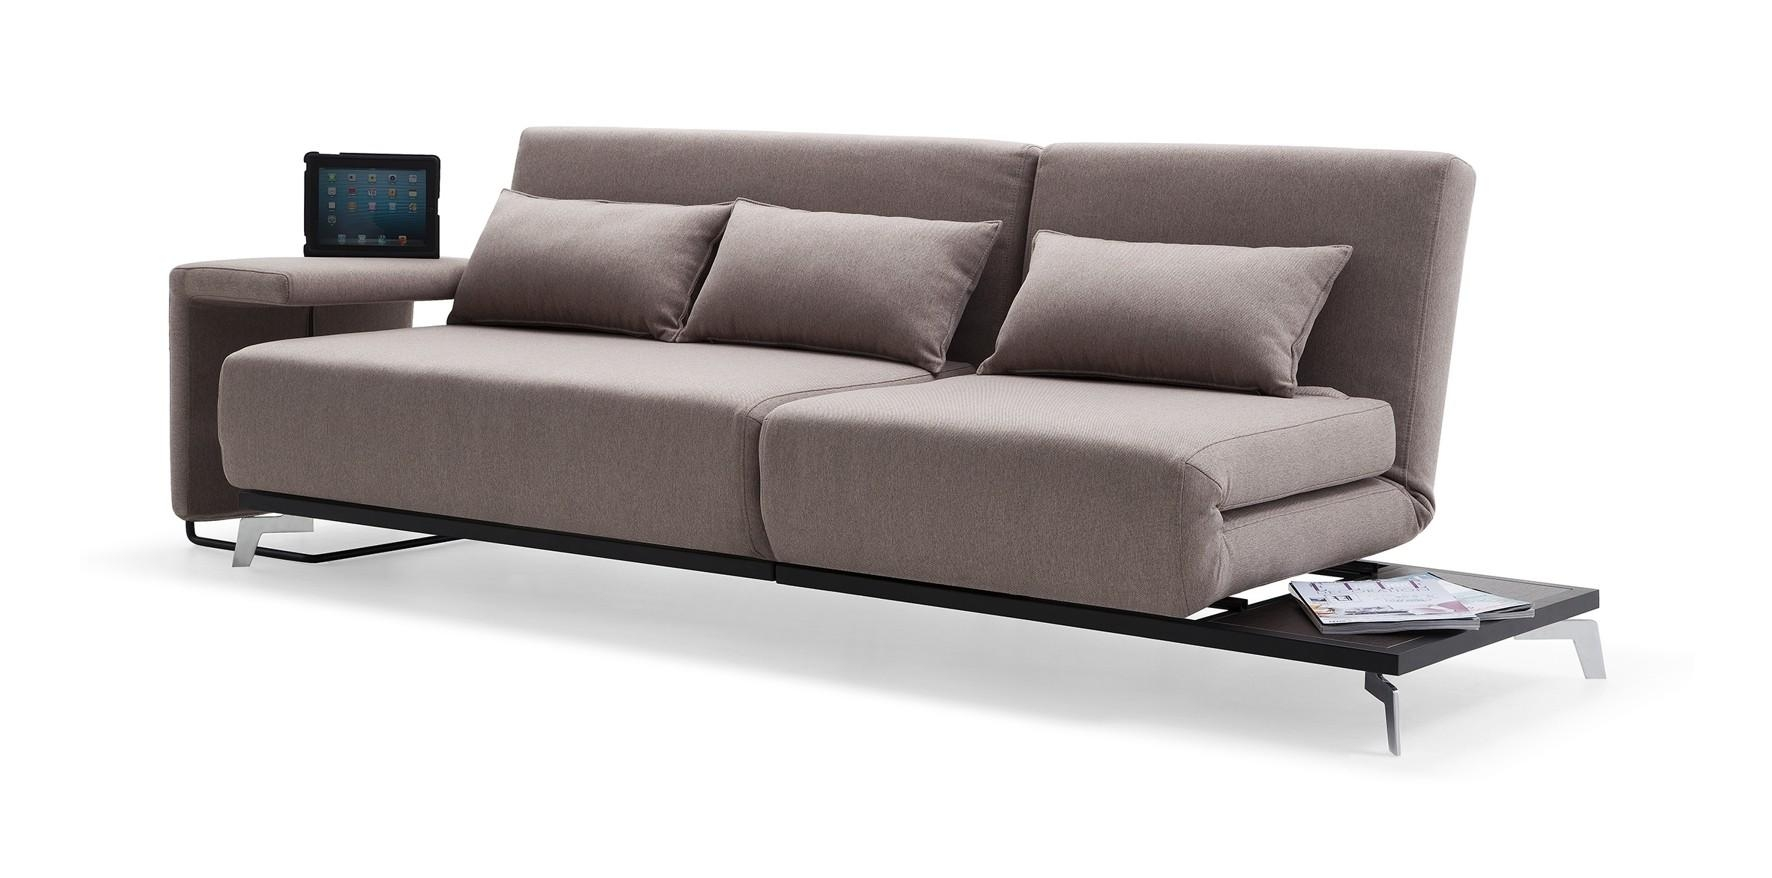 Modern Furniture Sofa Bed Within Small Modern Sofas (Image 10 of 20)